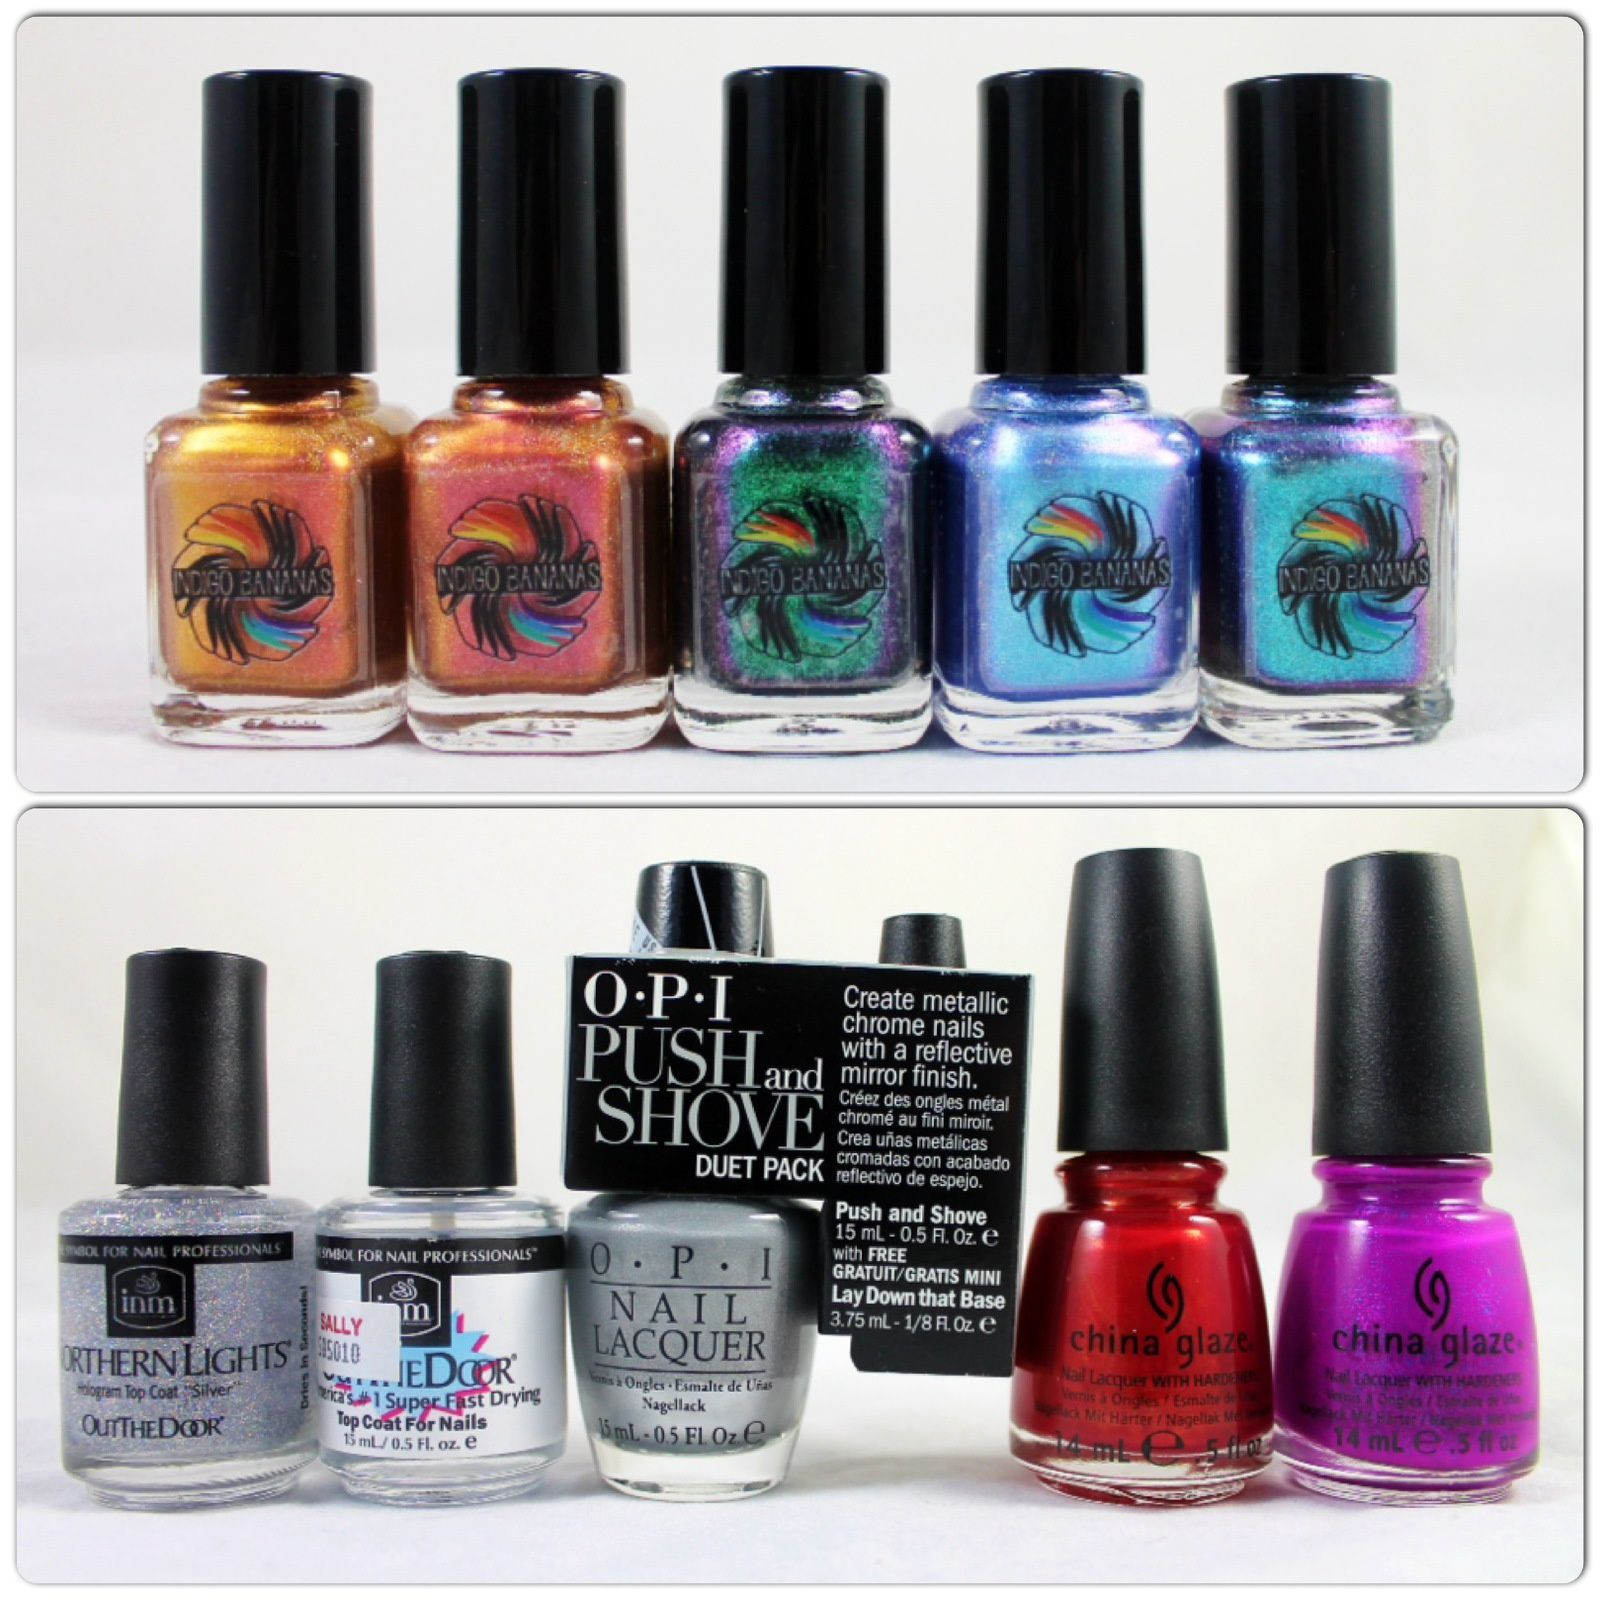 Indigo Bananas Son of Fire, A Thousant Dreams, Anansi, Maui Wowee & Maui. OutTheDoor Holographic and normal Top coat, OPI Push & Shove, China Glaze Go Crazy Red & Flying Dragon.